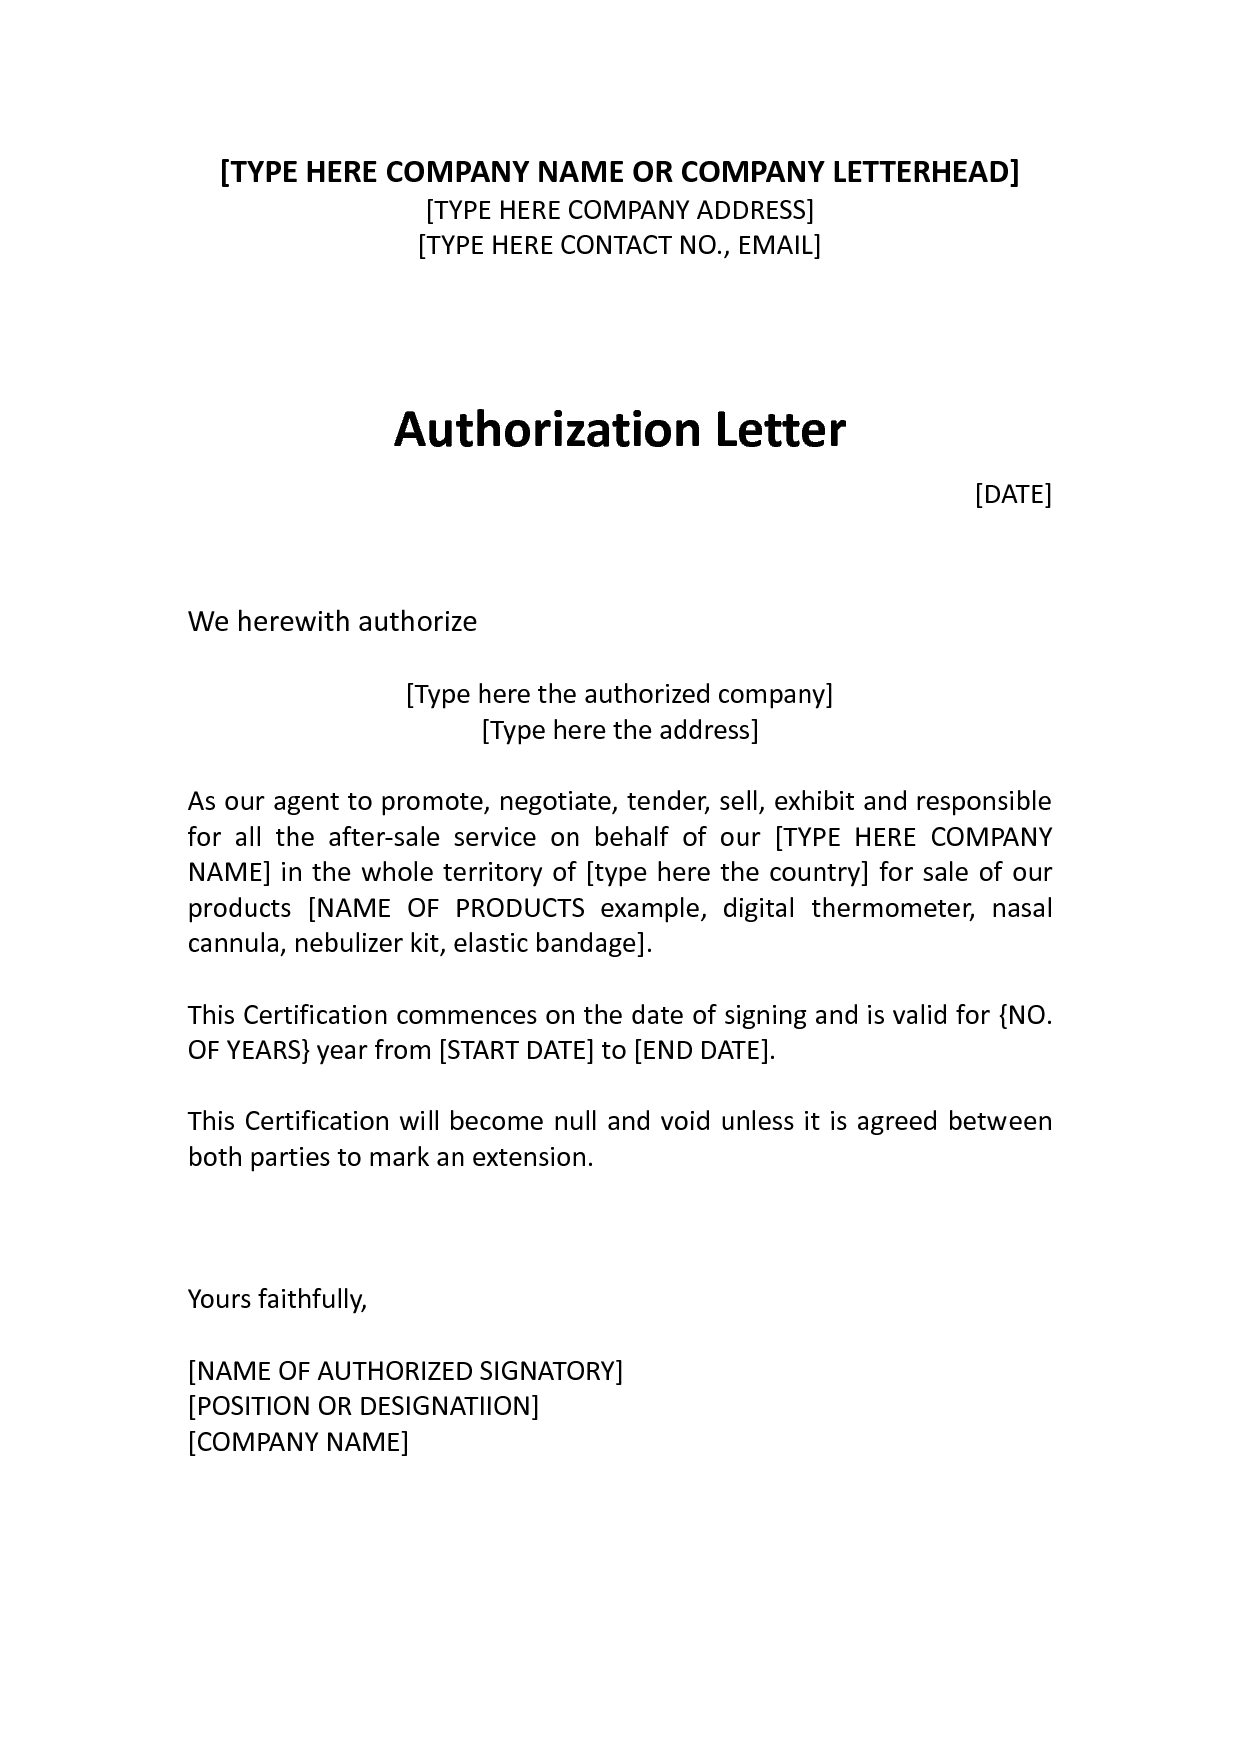 Free Letter Of Intent for A Job Template - Authorization Distributor Letter Sample Distributor Dealer